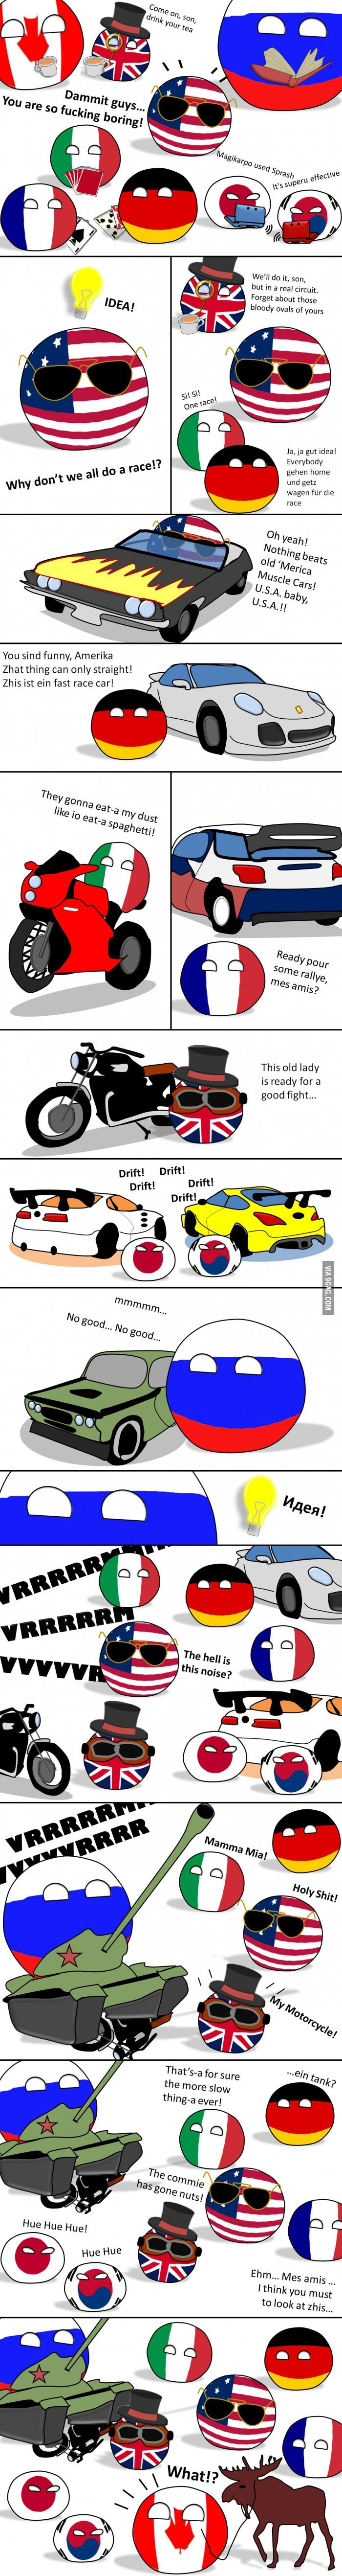 Bets are open. Who's gonna win?  ( USA, UK, Germaney, Italy, France, Japan, South Korea, Russia, Canada )  #polandball #countryball #flagball